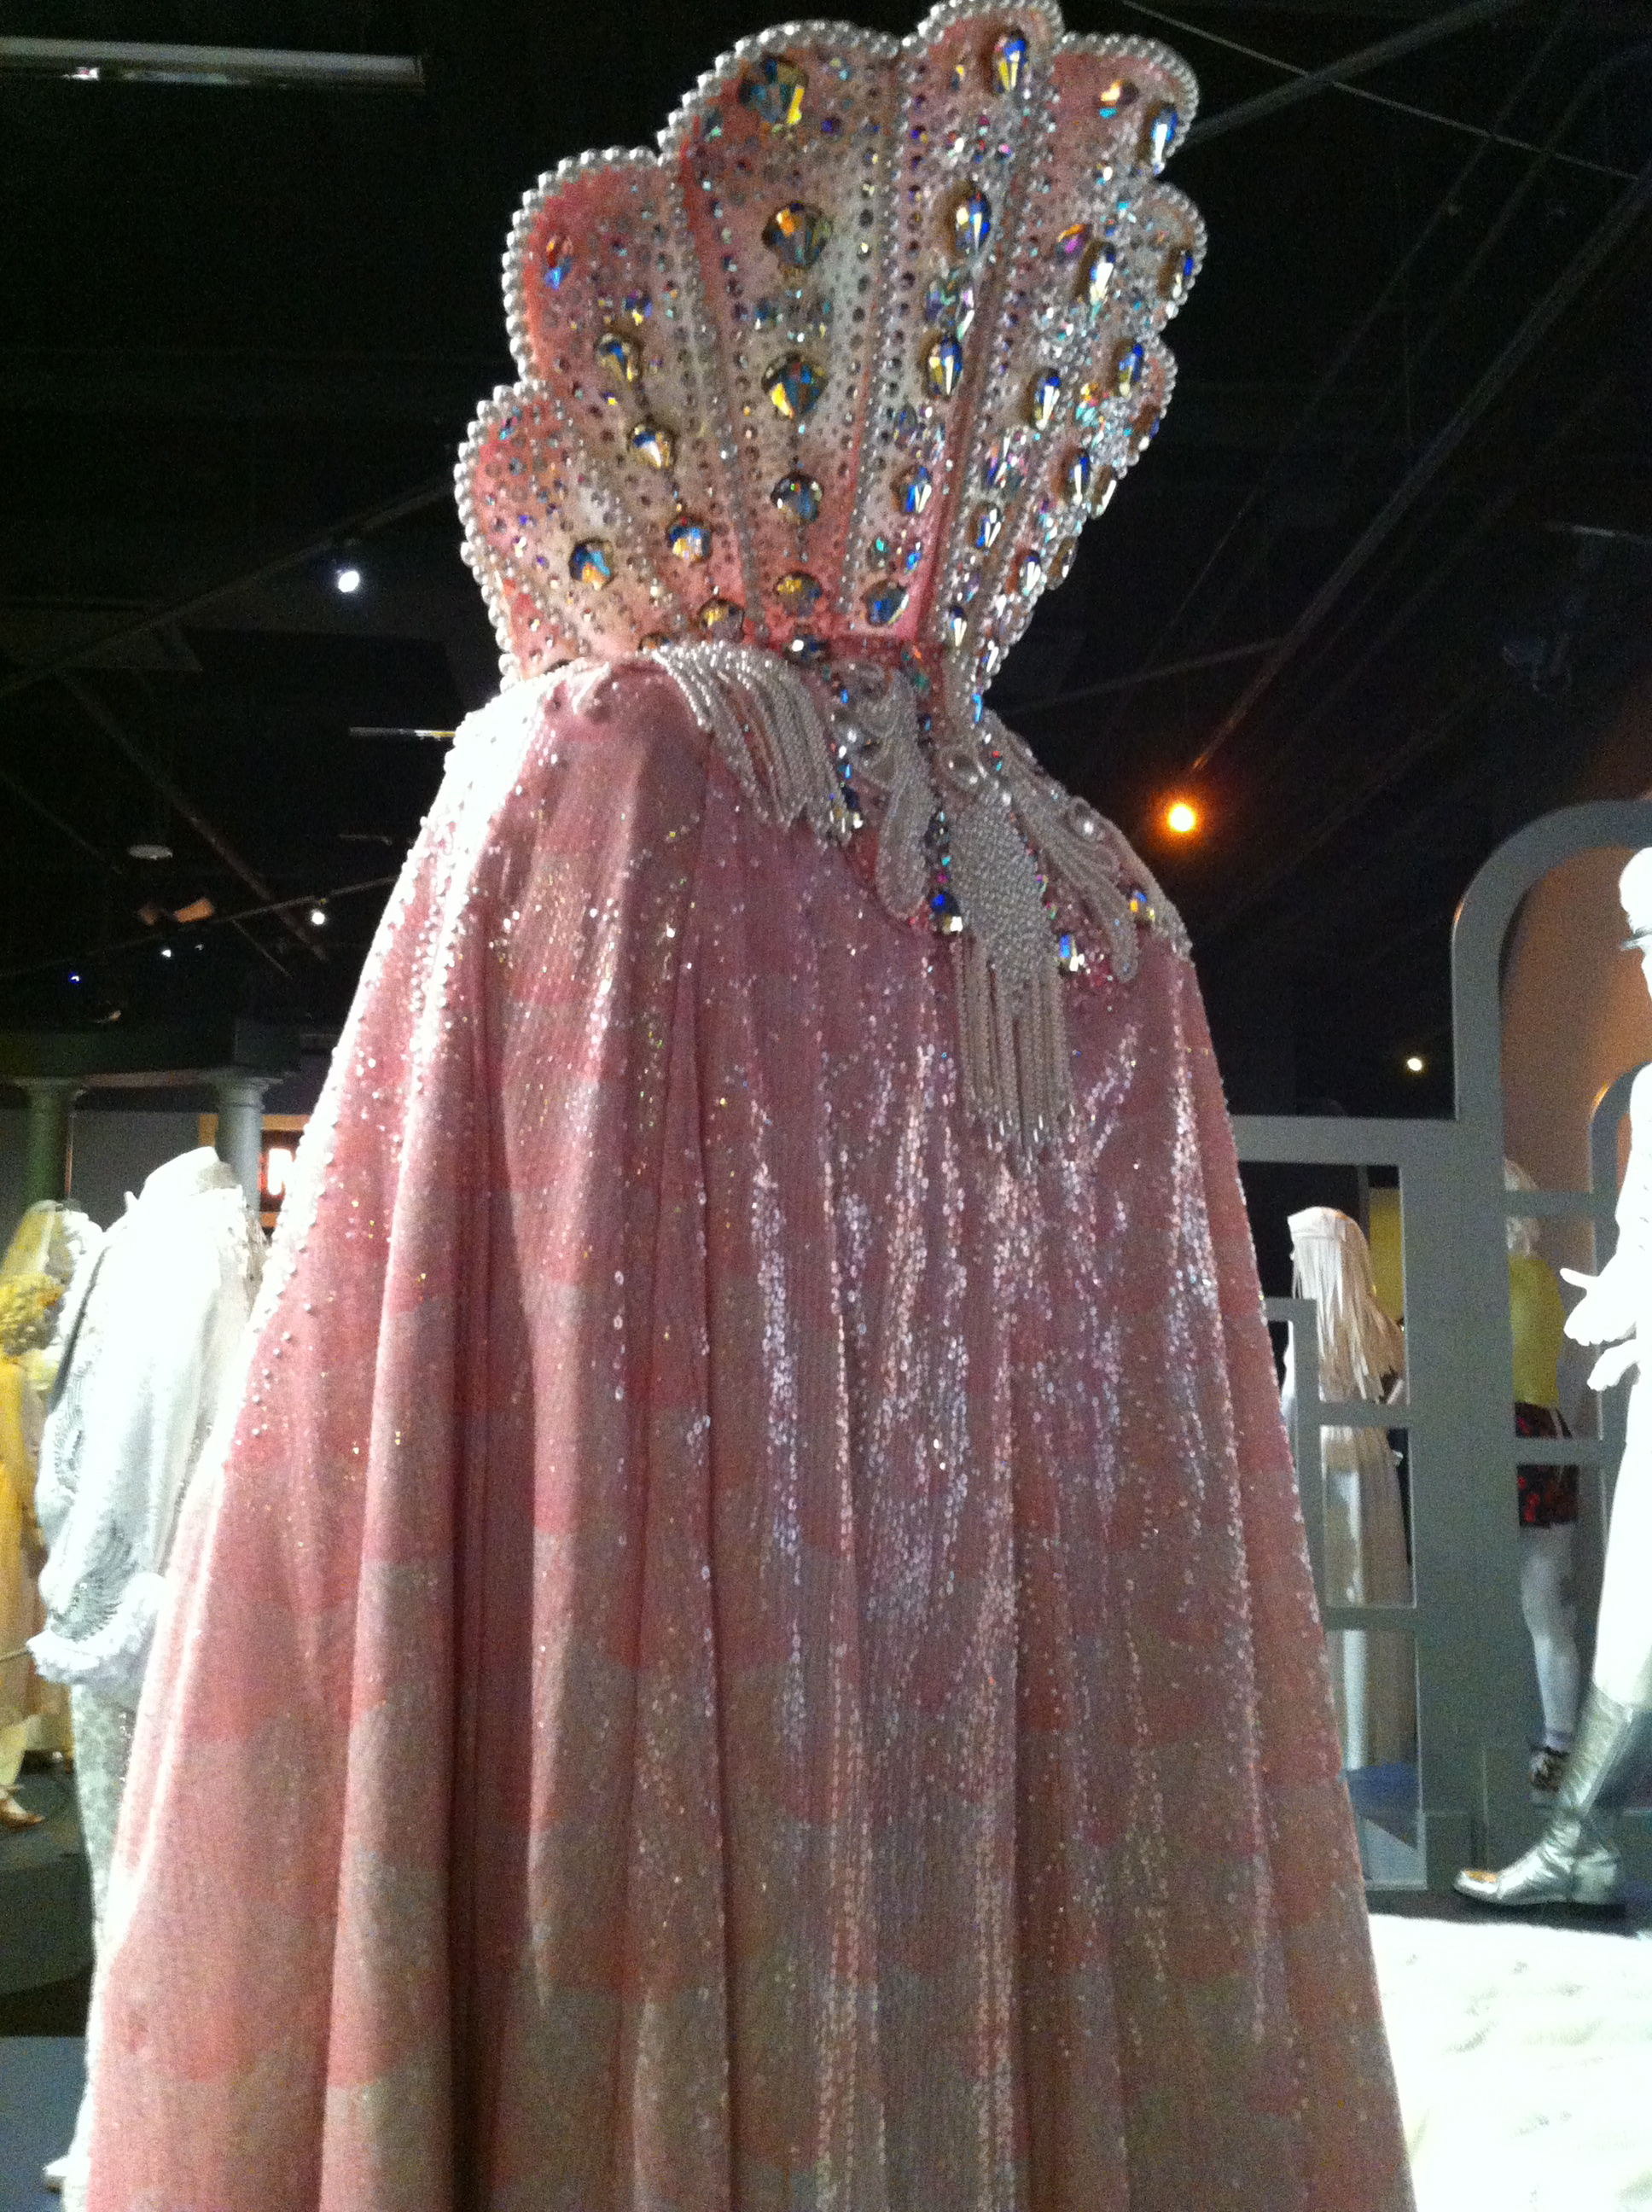 A Special Behind The Scenes Look At Television Costume Design Gowns By & liberace halloween costumes for sale - Hallowen Costum Udaf